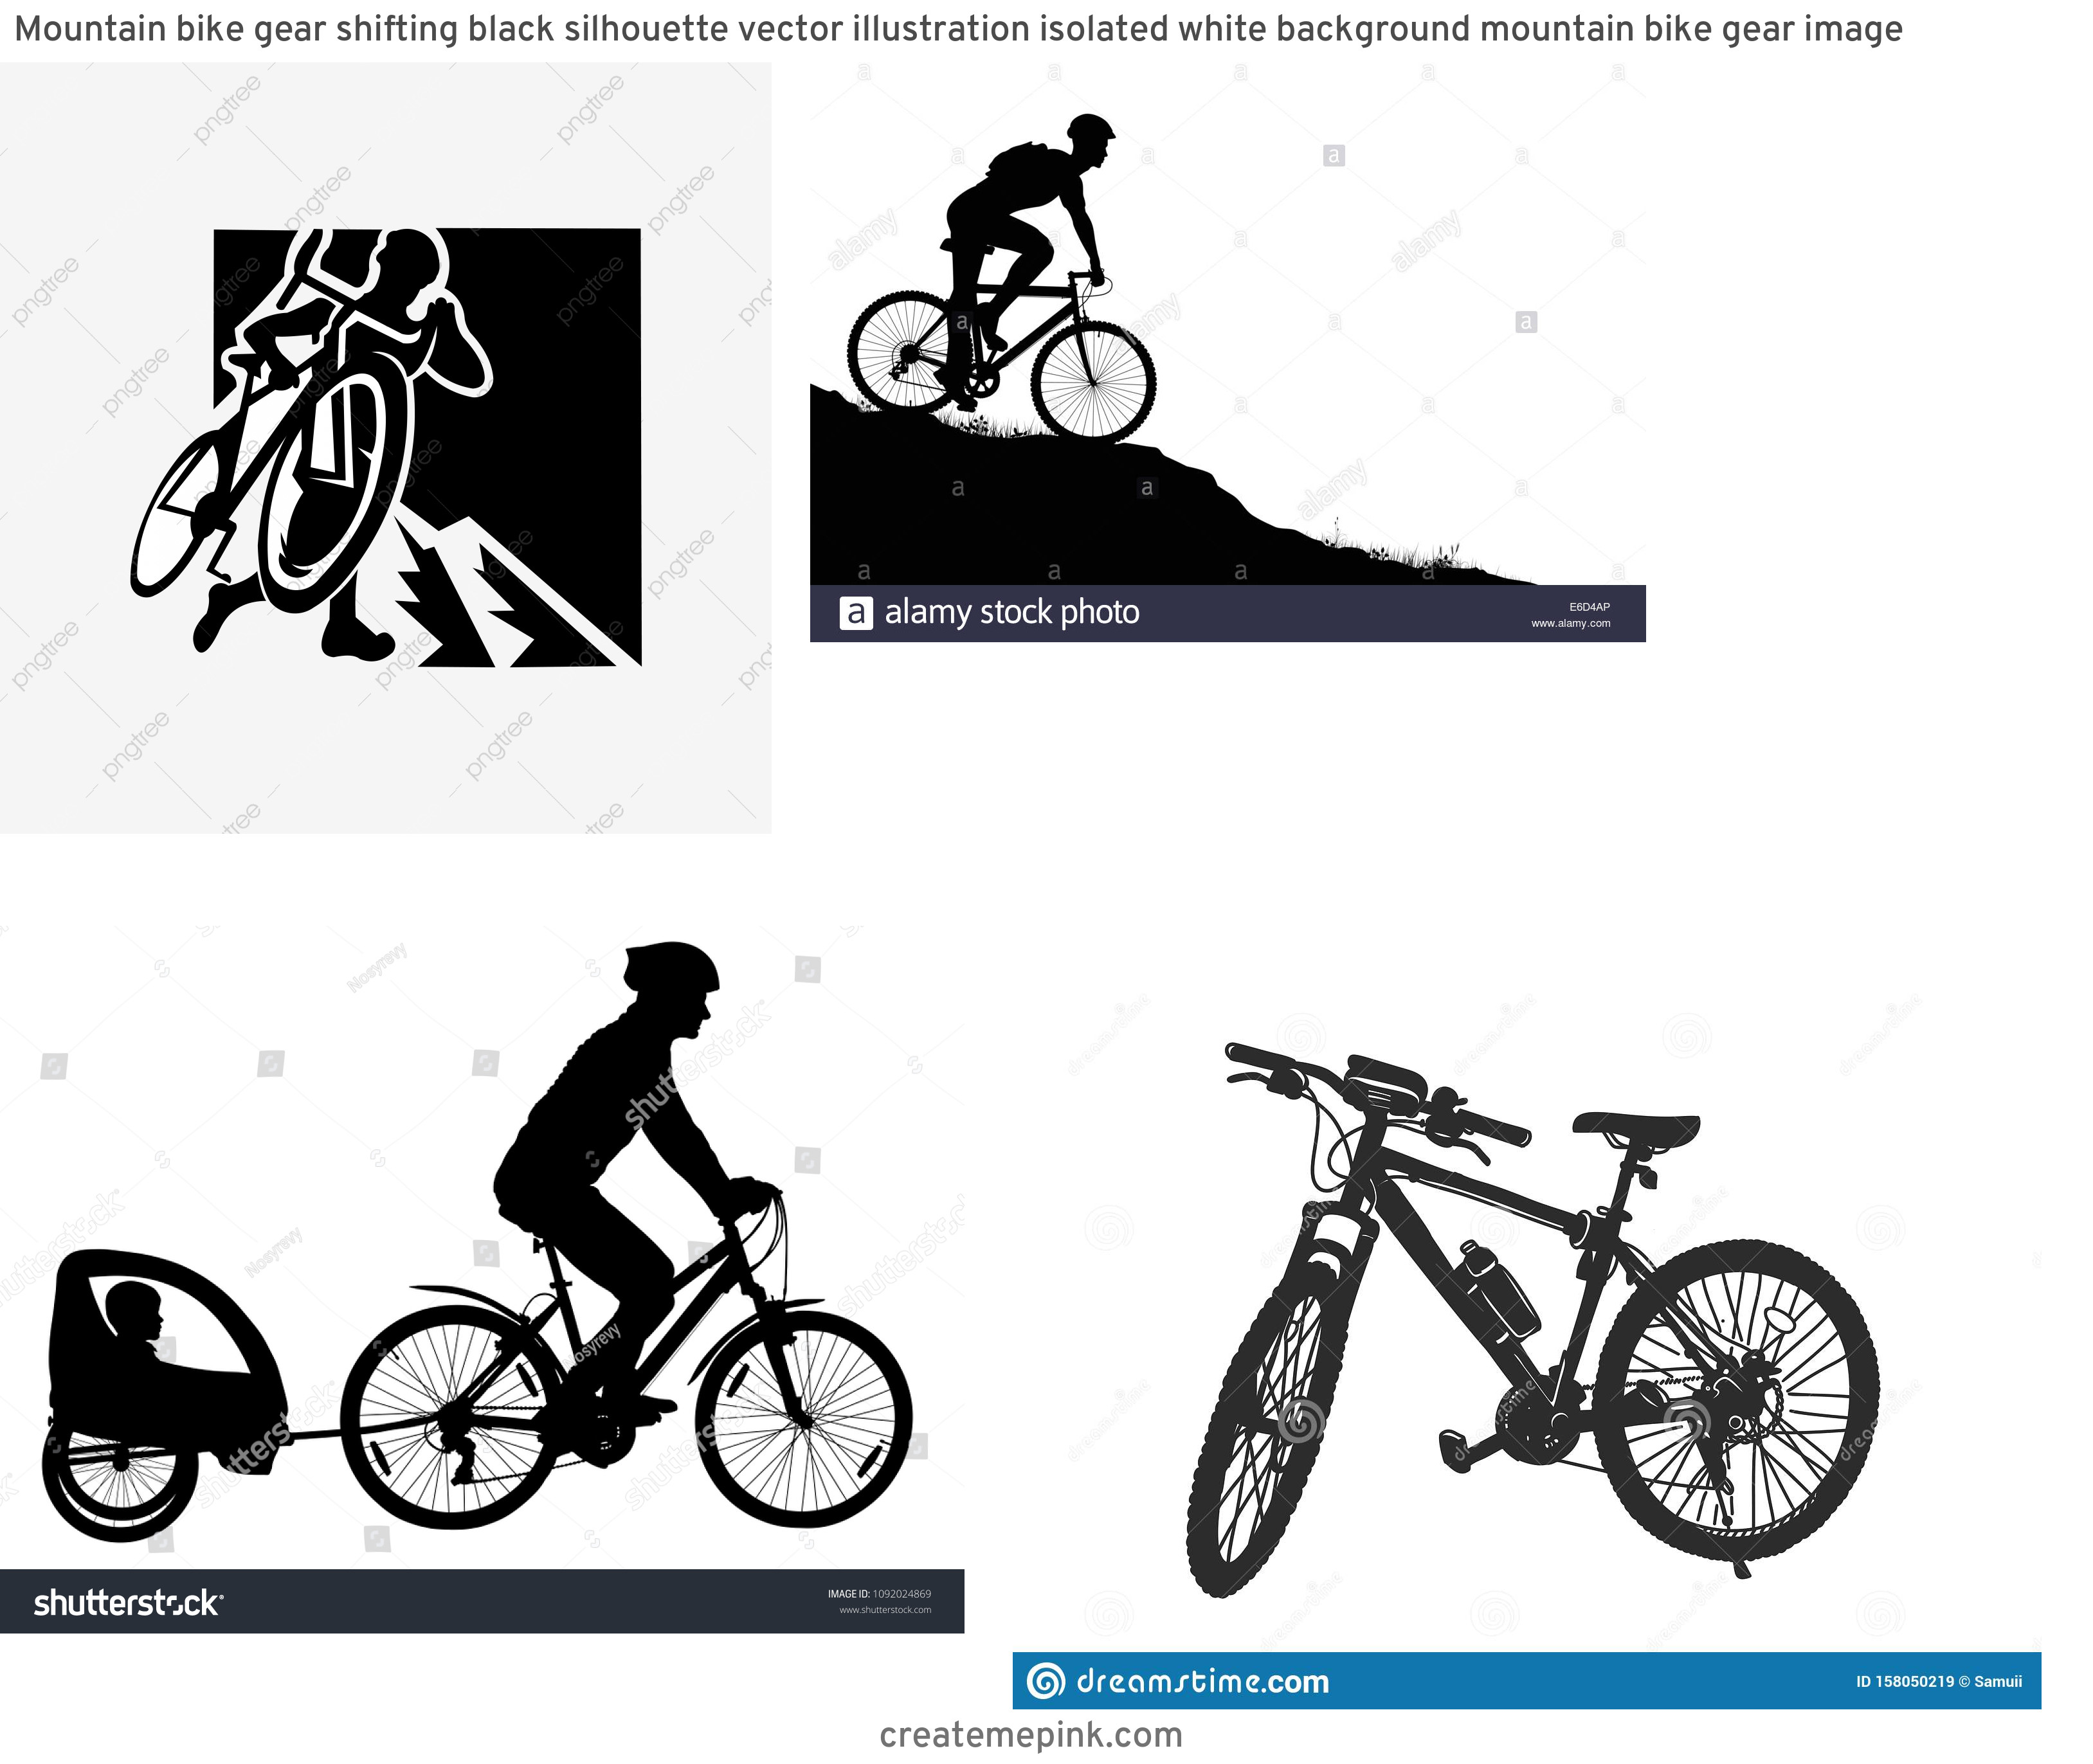 Mountain Bike Silhouette Vector: Mountain Bike Gear Shifting Black Silhouette Vector Illustration Isolated White Background Mountain Bike Gear Image